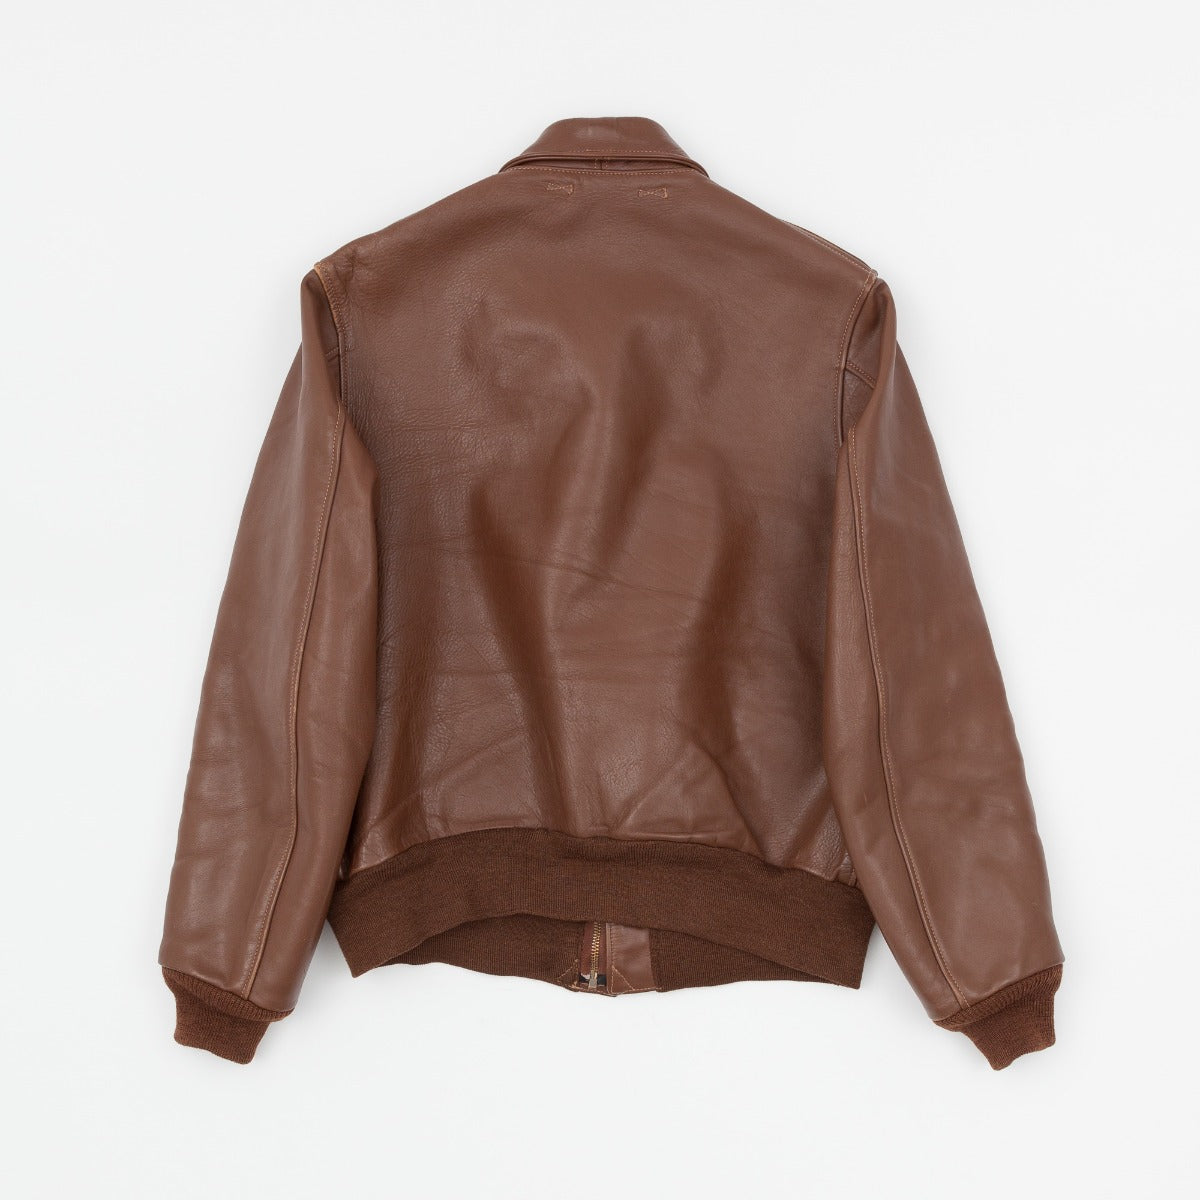 Type A-2 Dubow Leather jacket